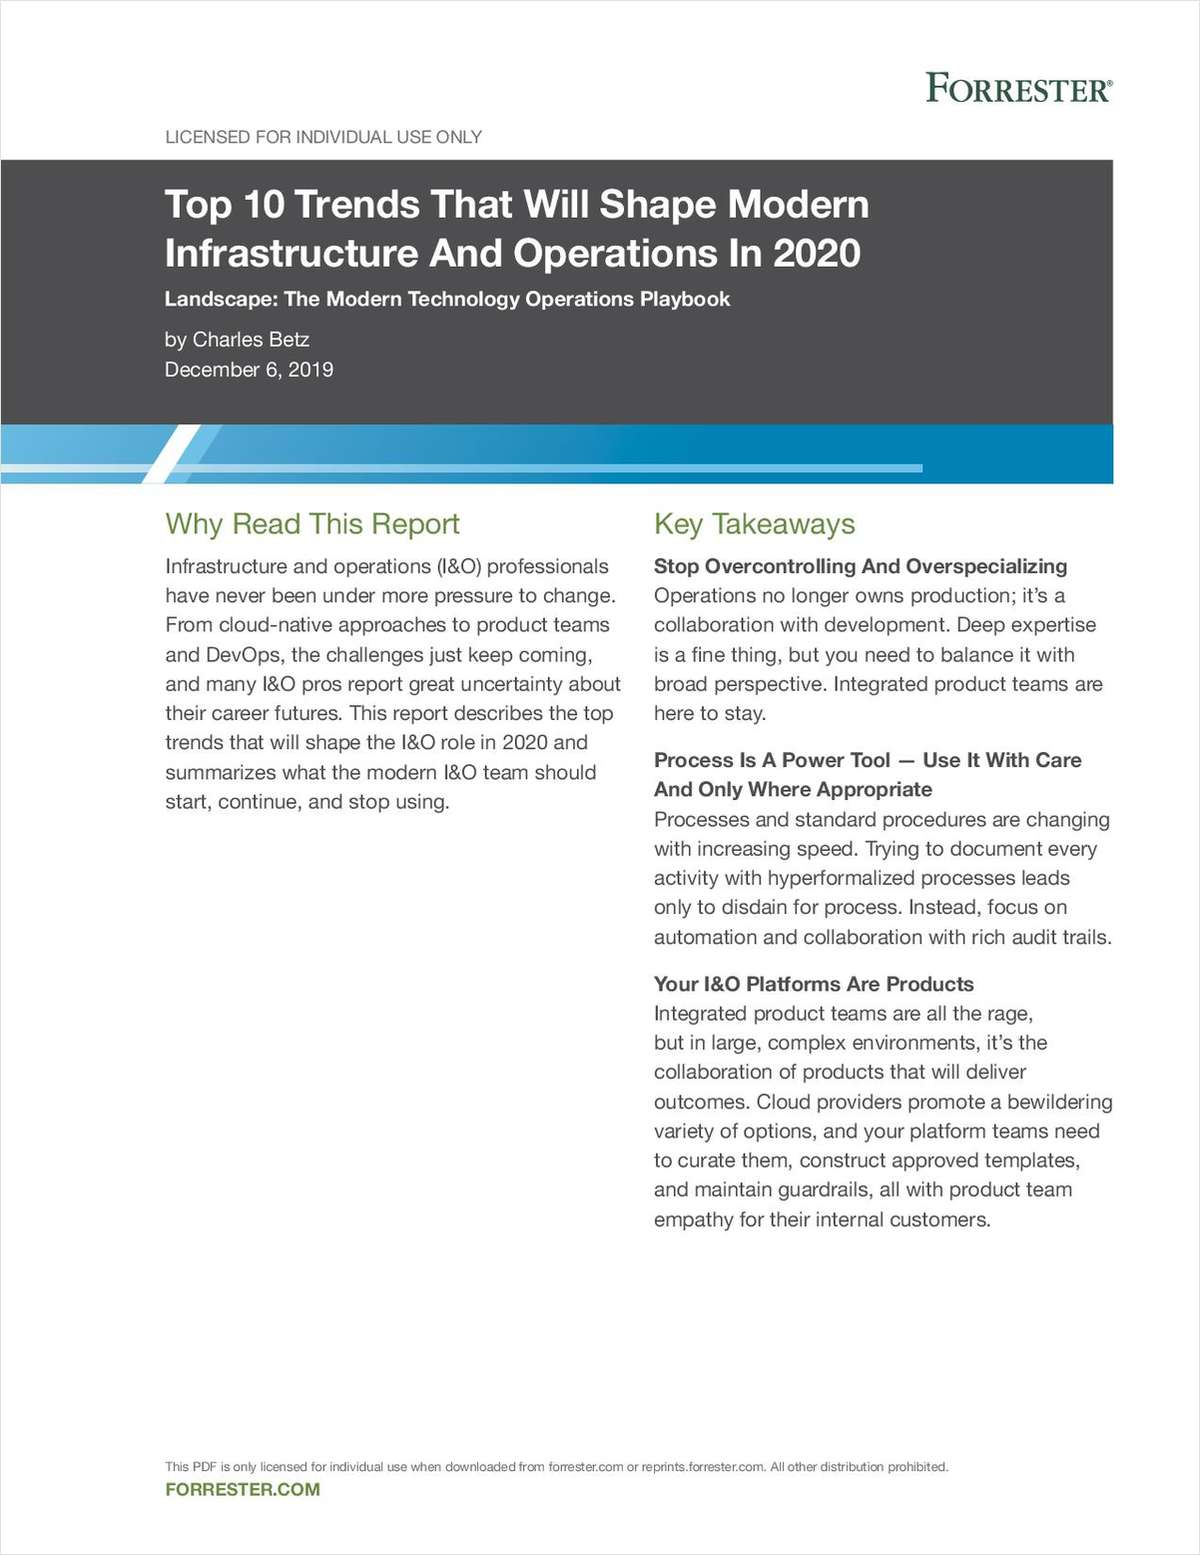 Forrester: Top 10 Trends That Will Shape Modern Infrastructure & Ops in 2020